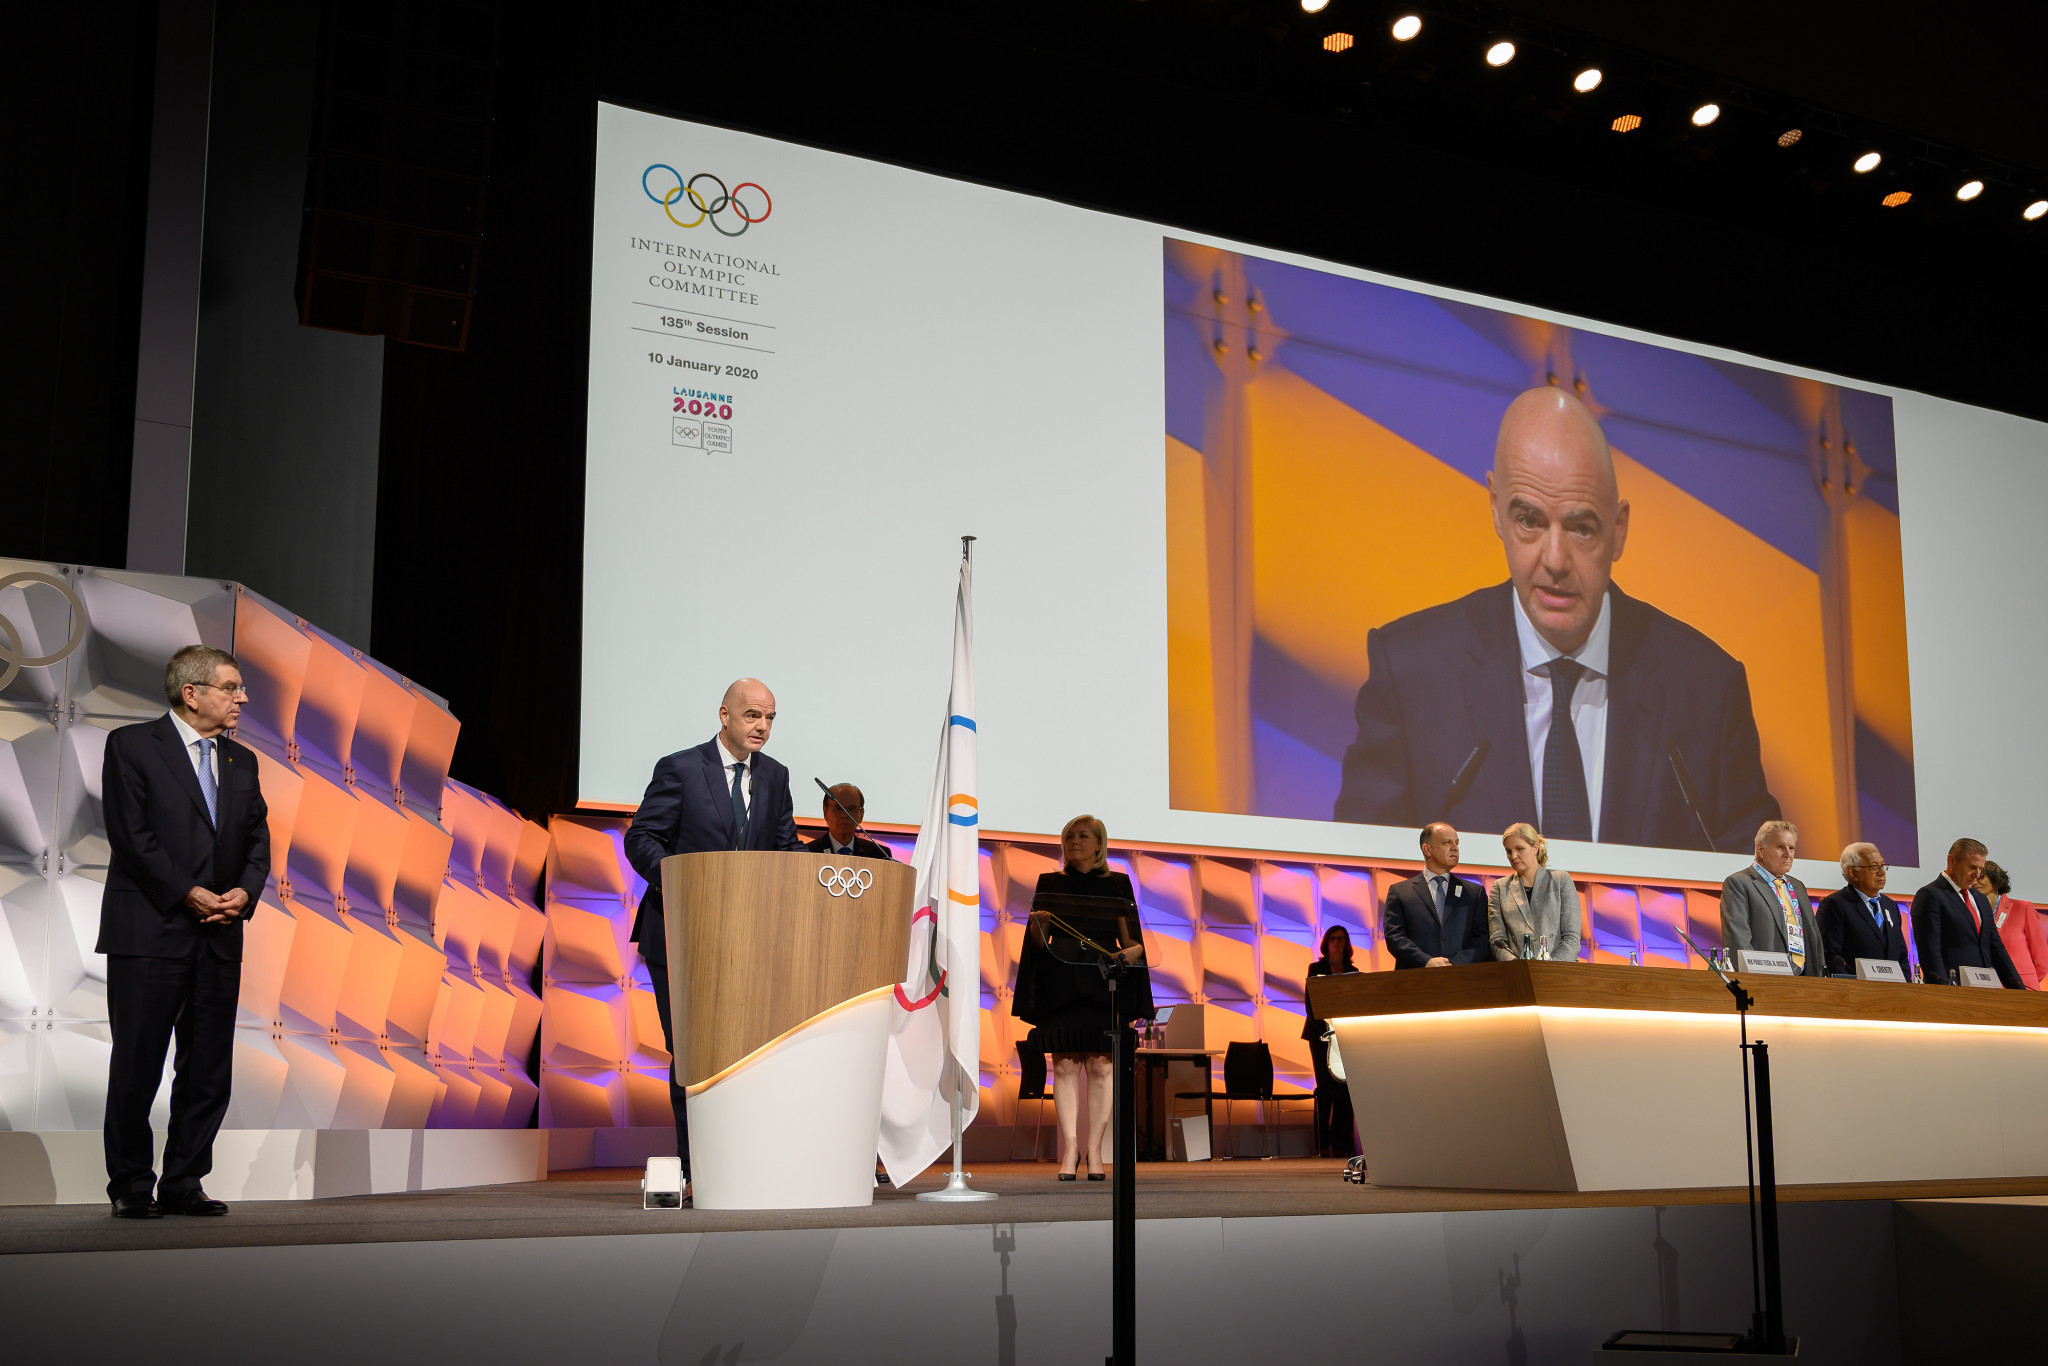 New IOC members are elected at Sessions ©Getty Images